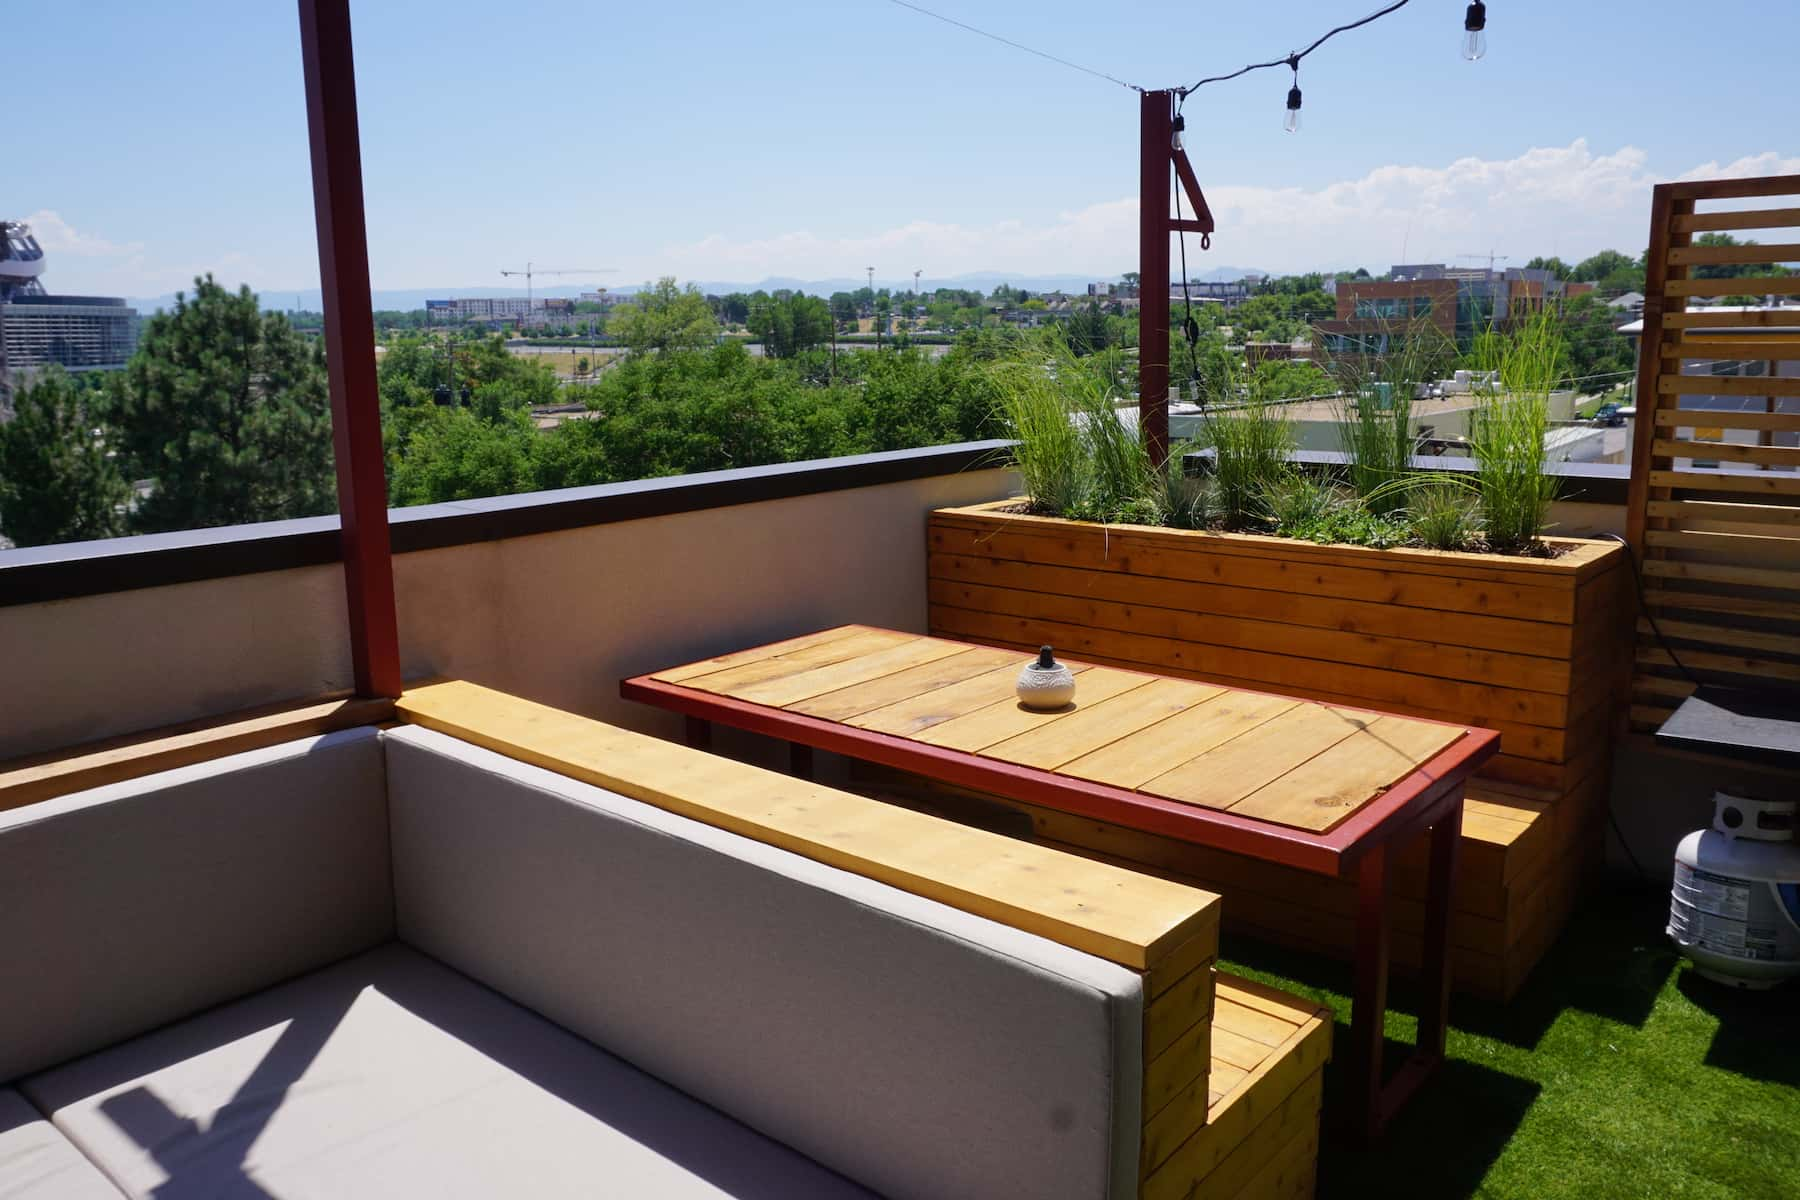 Pergola Daybed Planters Hot Tub Outdoor Dining TV Turf Outdoor Dining Mile High Stadium Denver CO